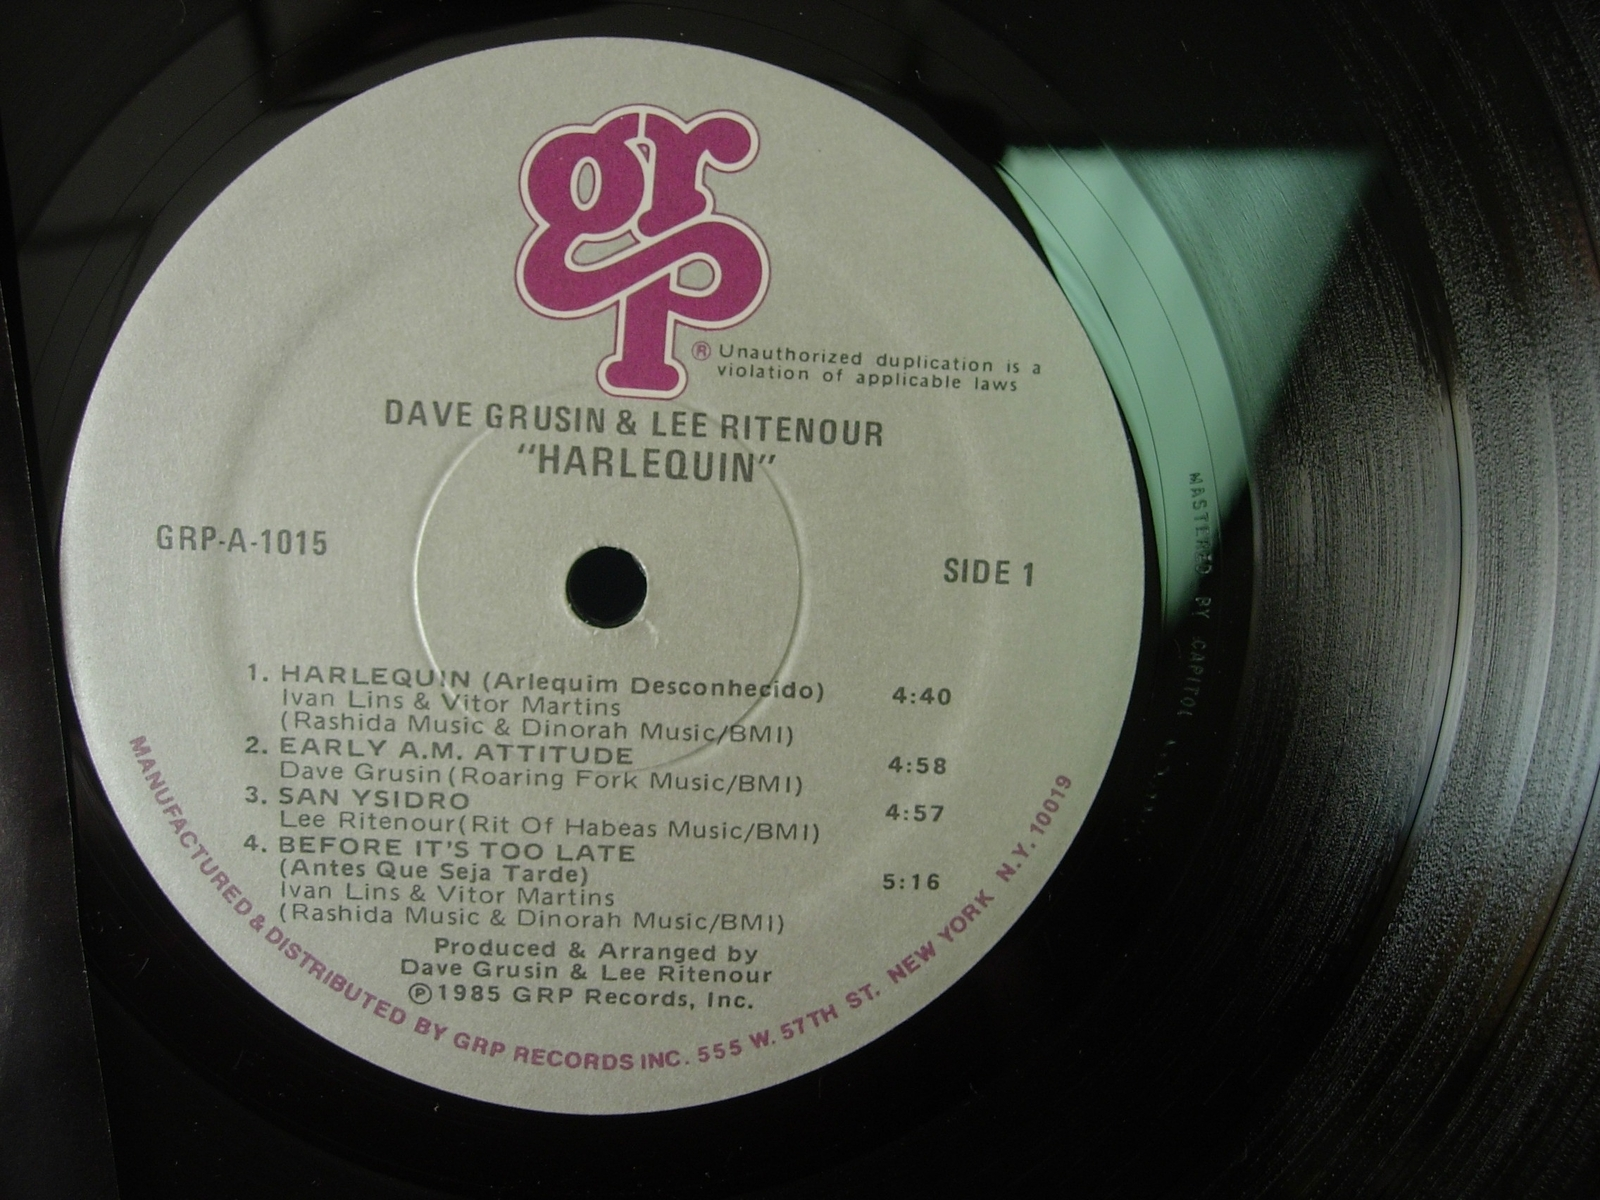 Dave Grusin & Lee Ritenour - Harlequin - GRP Records GRP A-1015